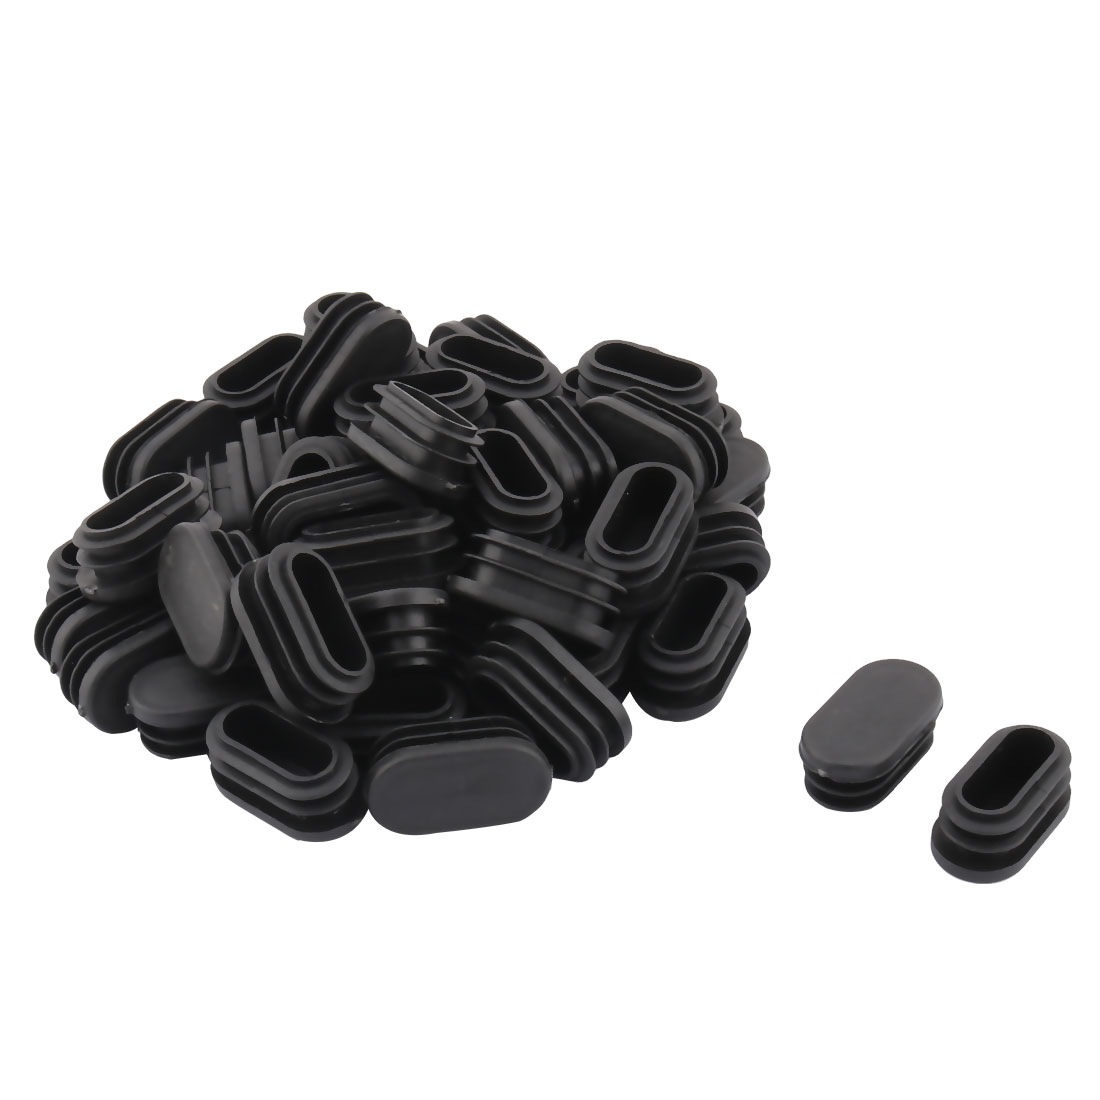 Plastic Oval Design Tube Insert End Blanking Cover Cap Black 40 x 20mm 50pcs